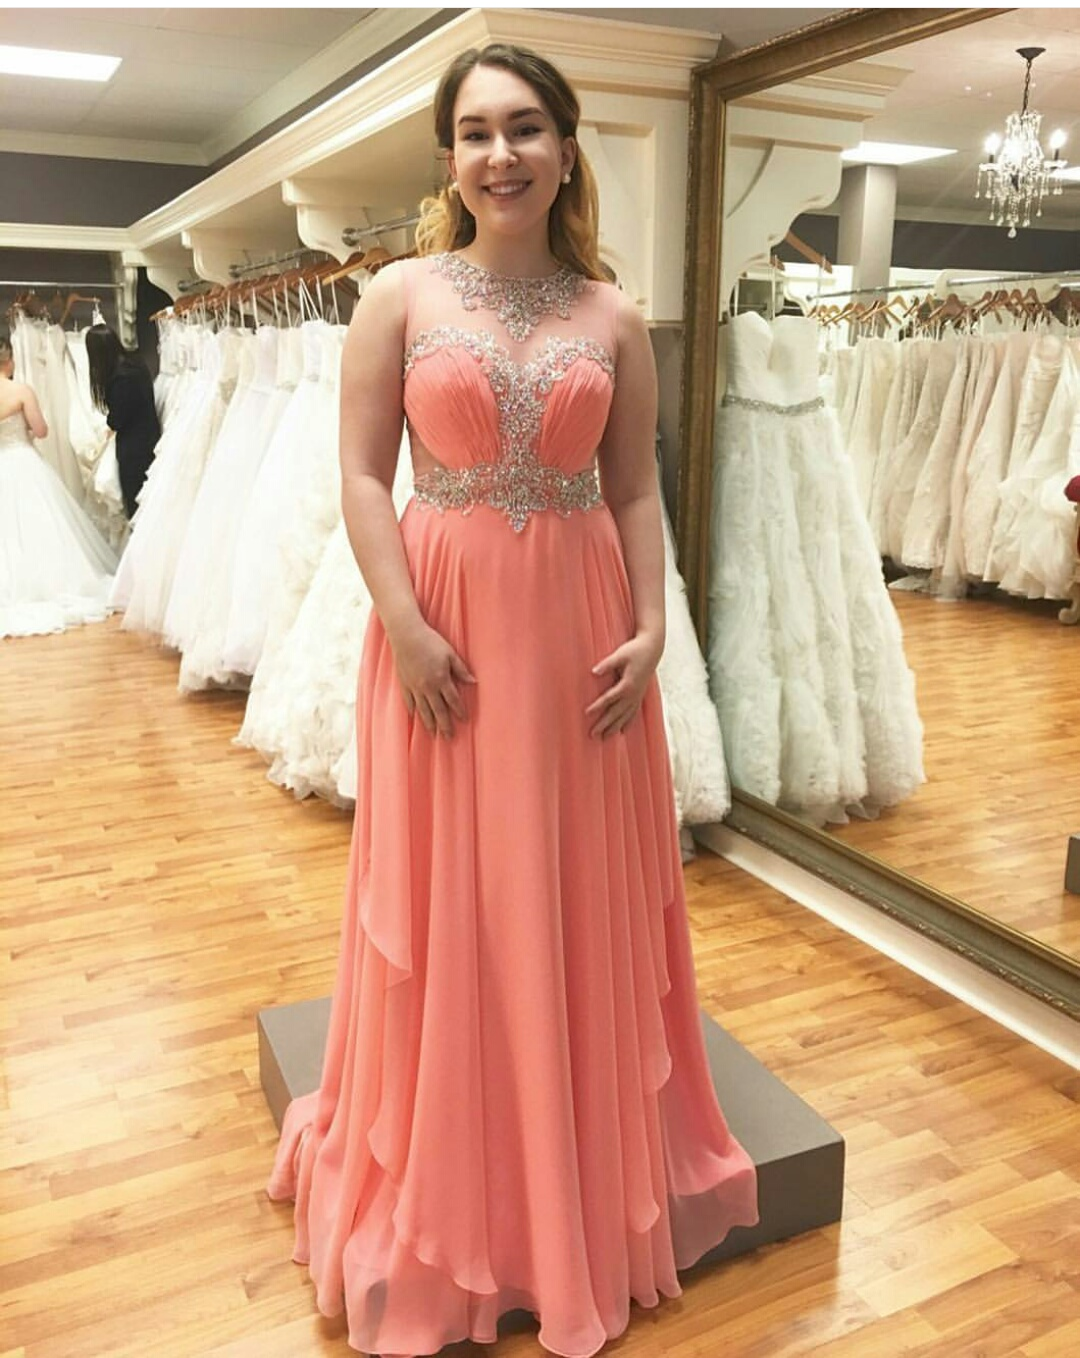 Sexy Prom Dresses,Chiffon Prom Dress,Long Evening Dress, Formal Dress,Prom Party Dress